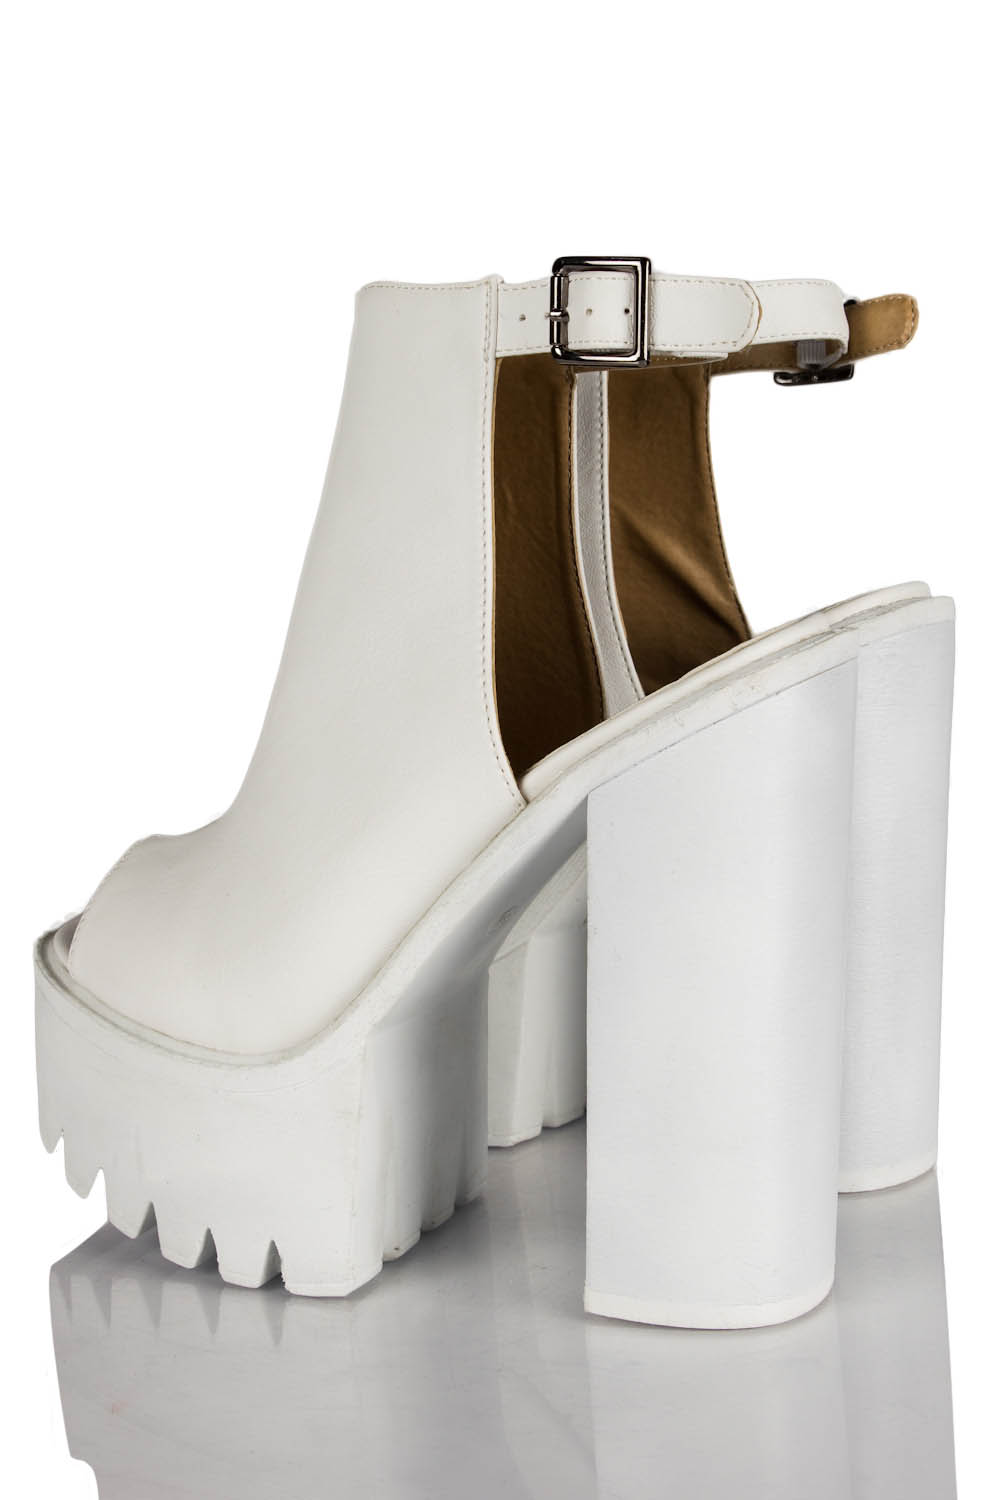 Mollie ankle strap peep toe chunky platform boots in white pu